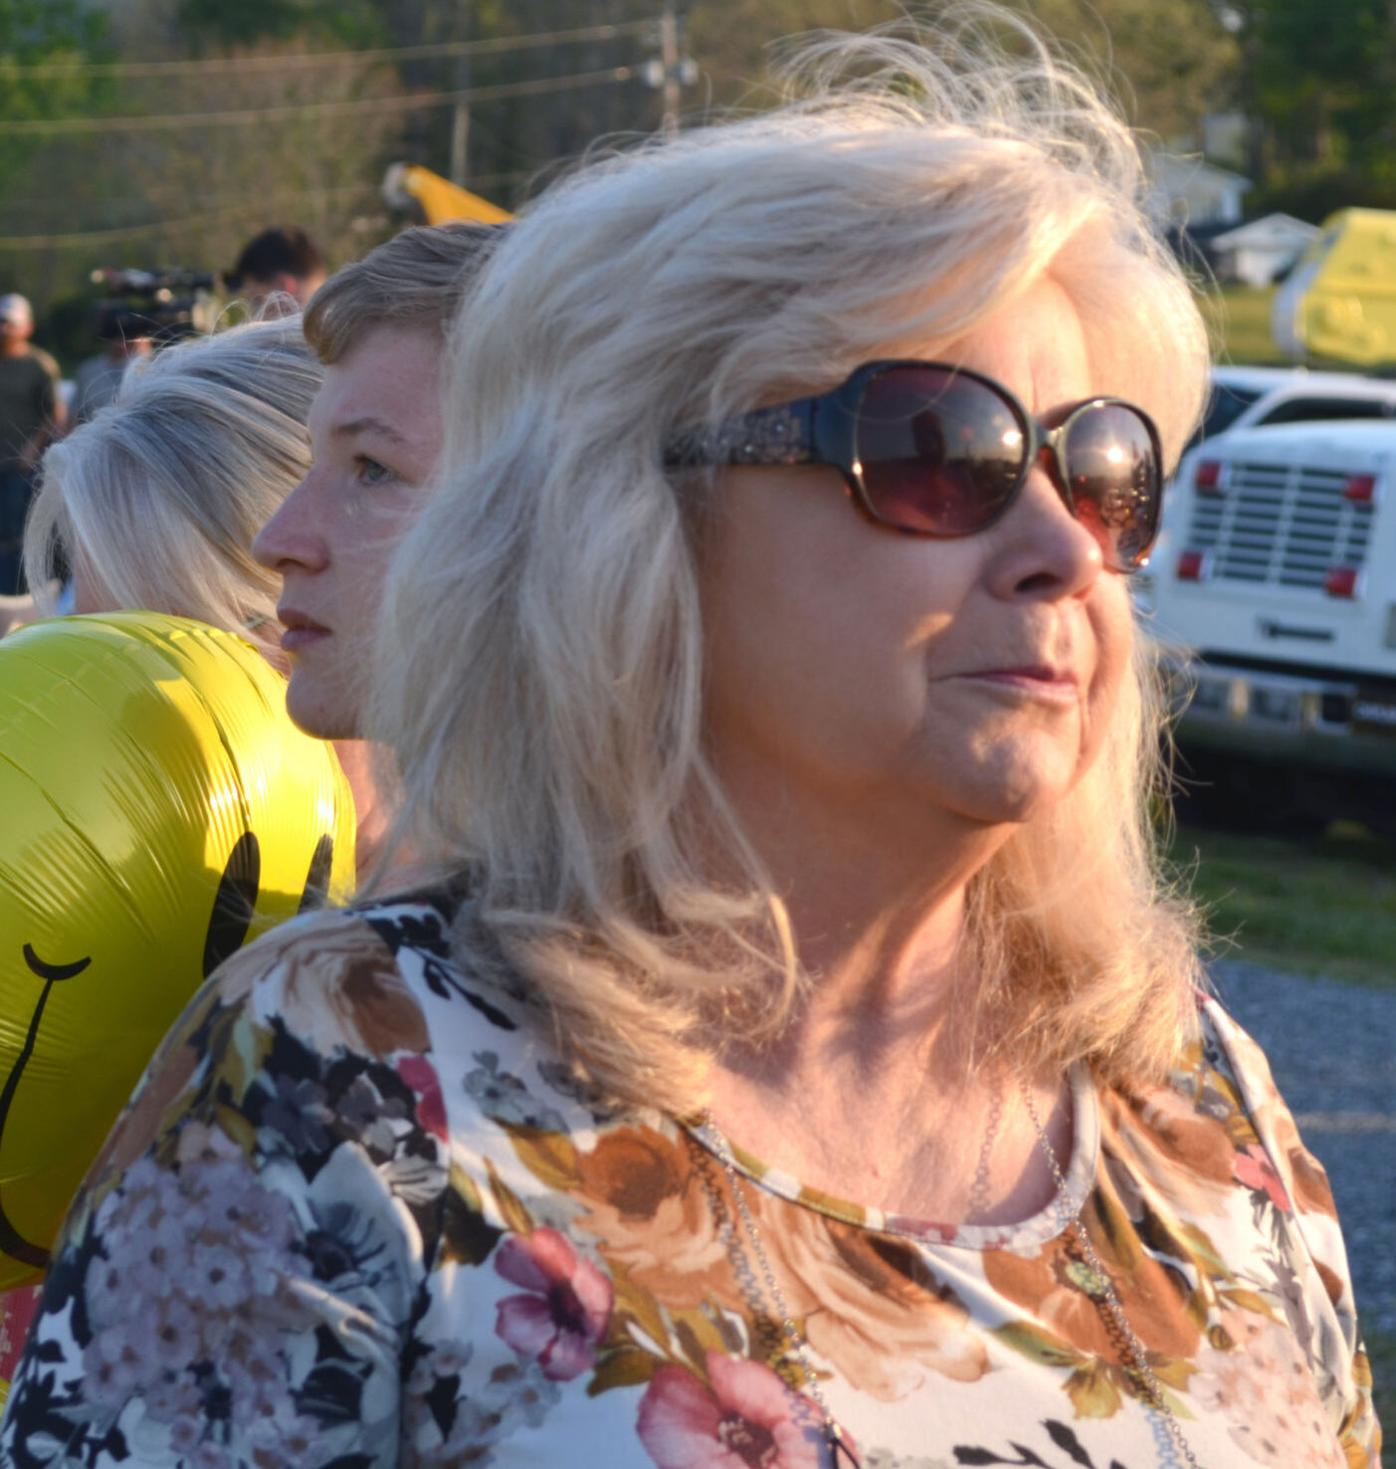 Tornado Victims' WIfe Attends Memorial Service